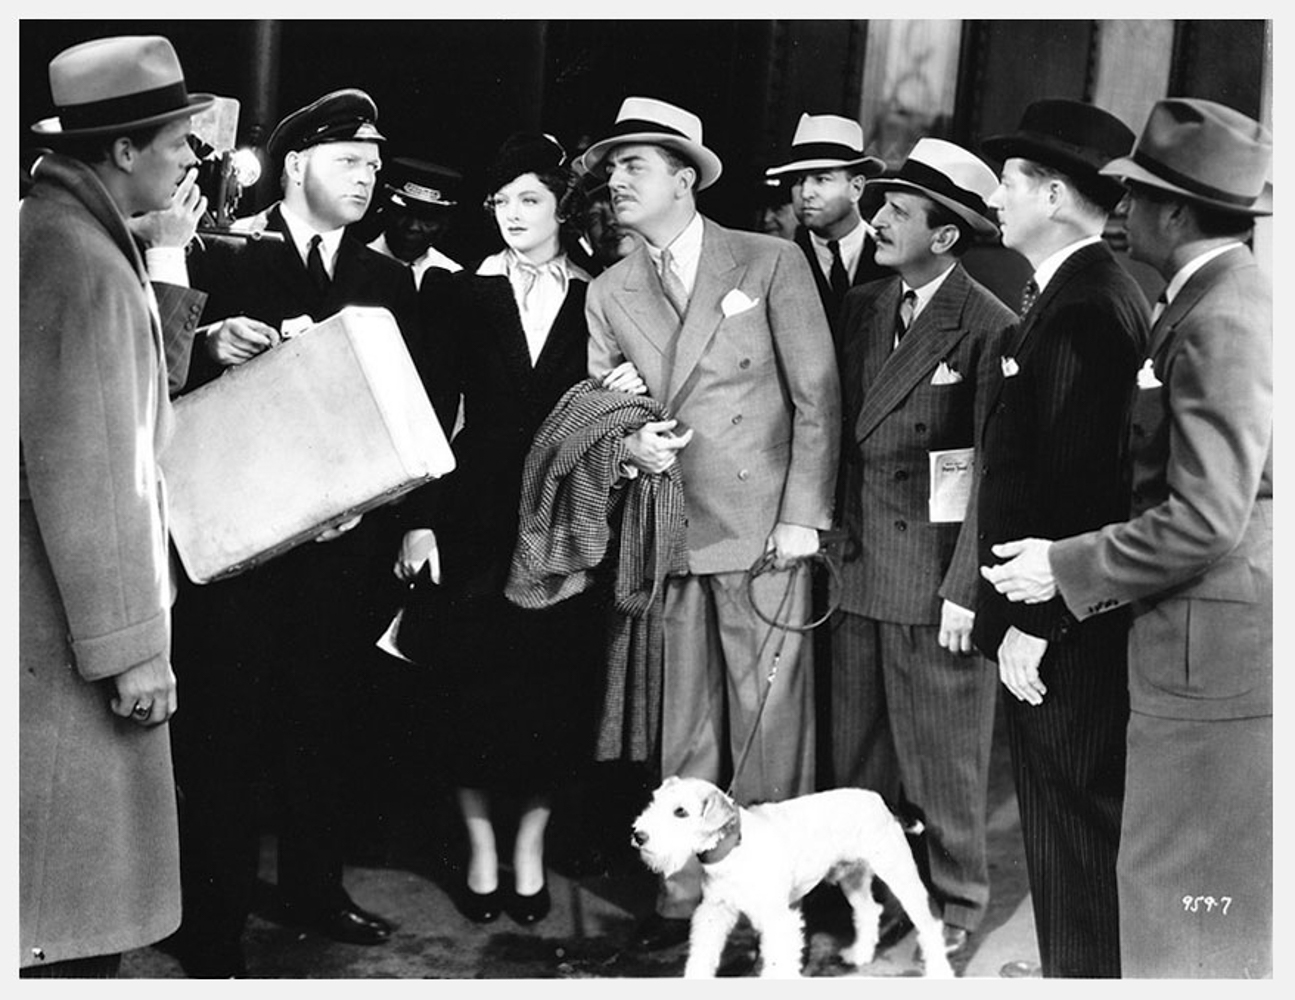 after the thin man 1936 scene still photo 959-7